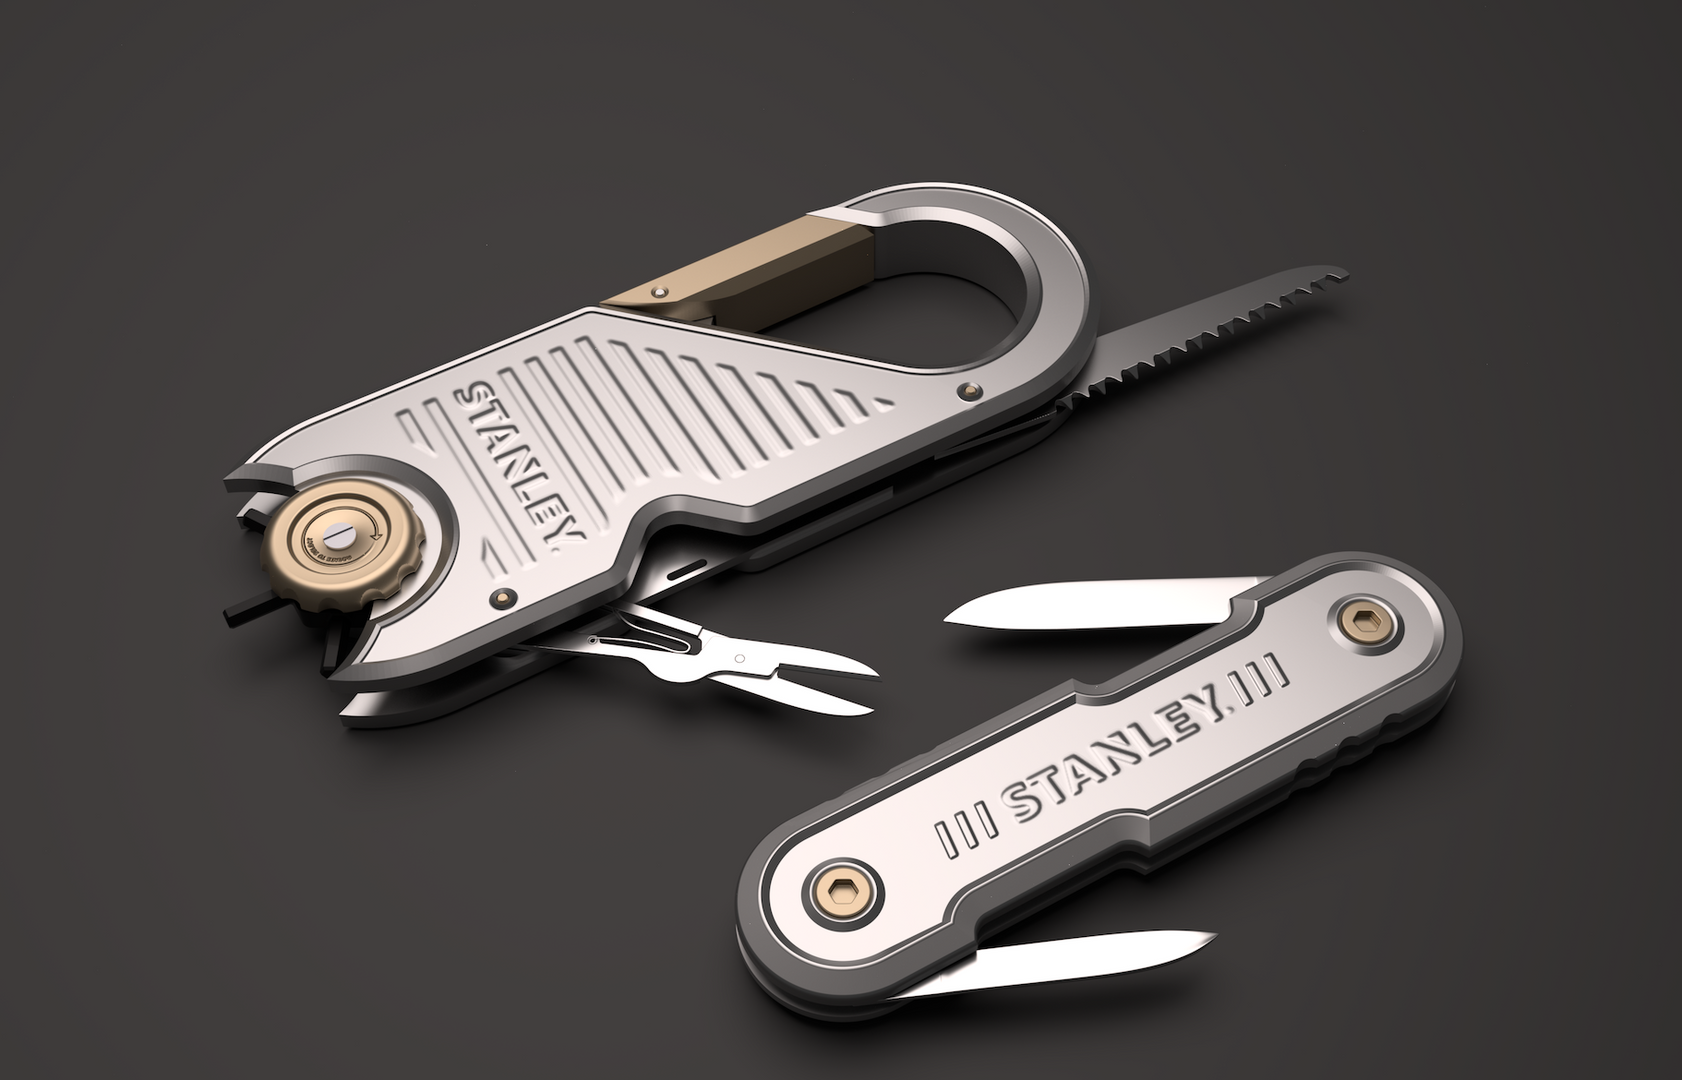 Licensed Multi Tool and pen knife concepts